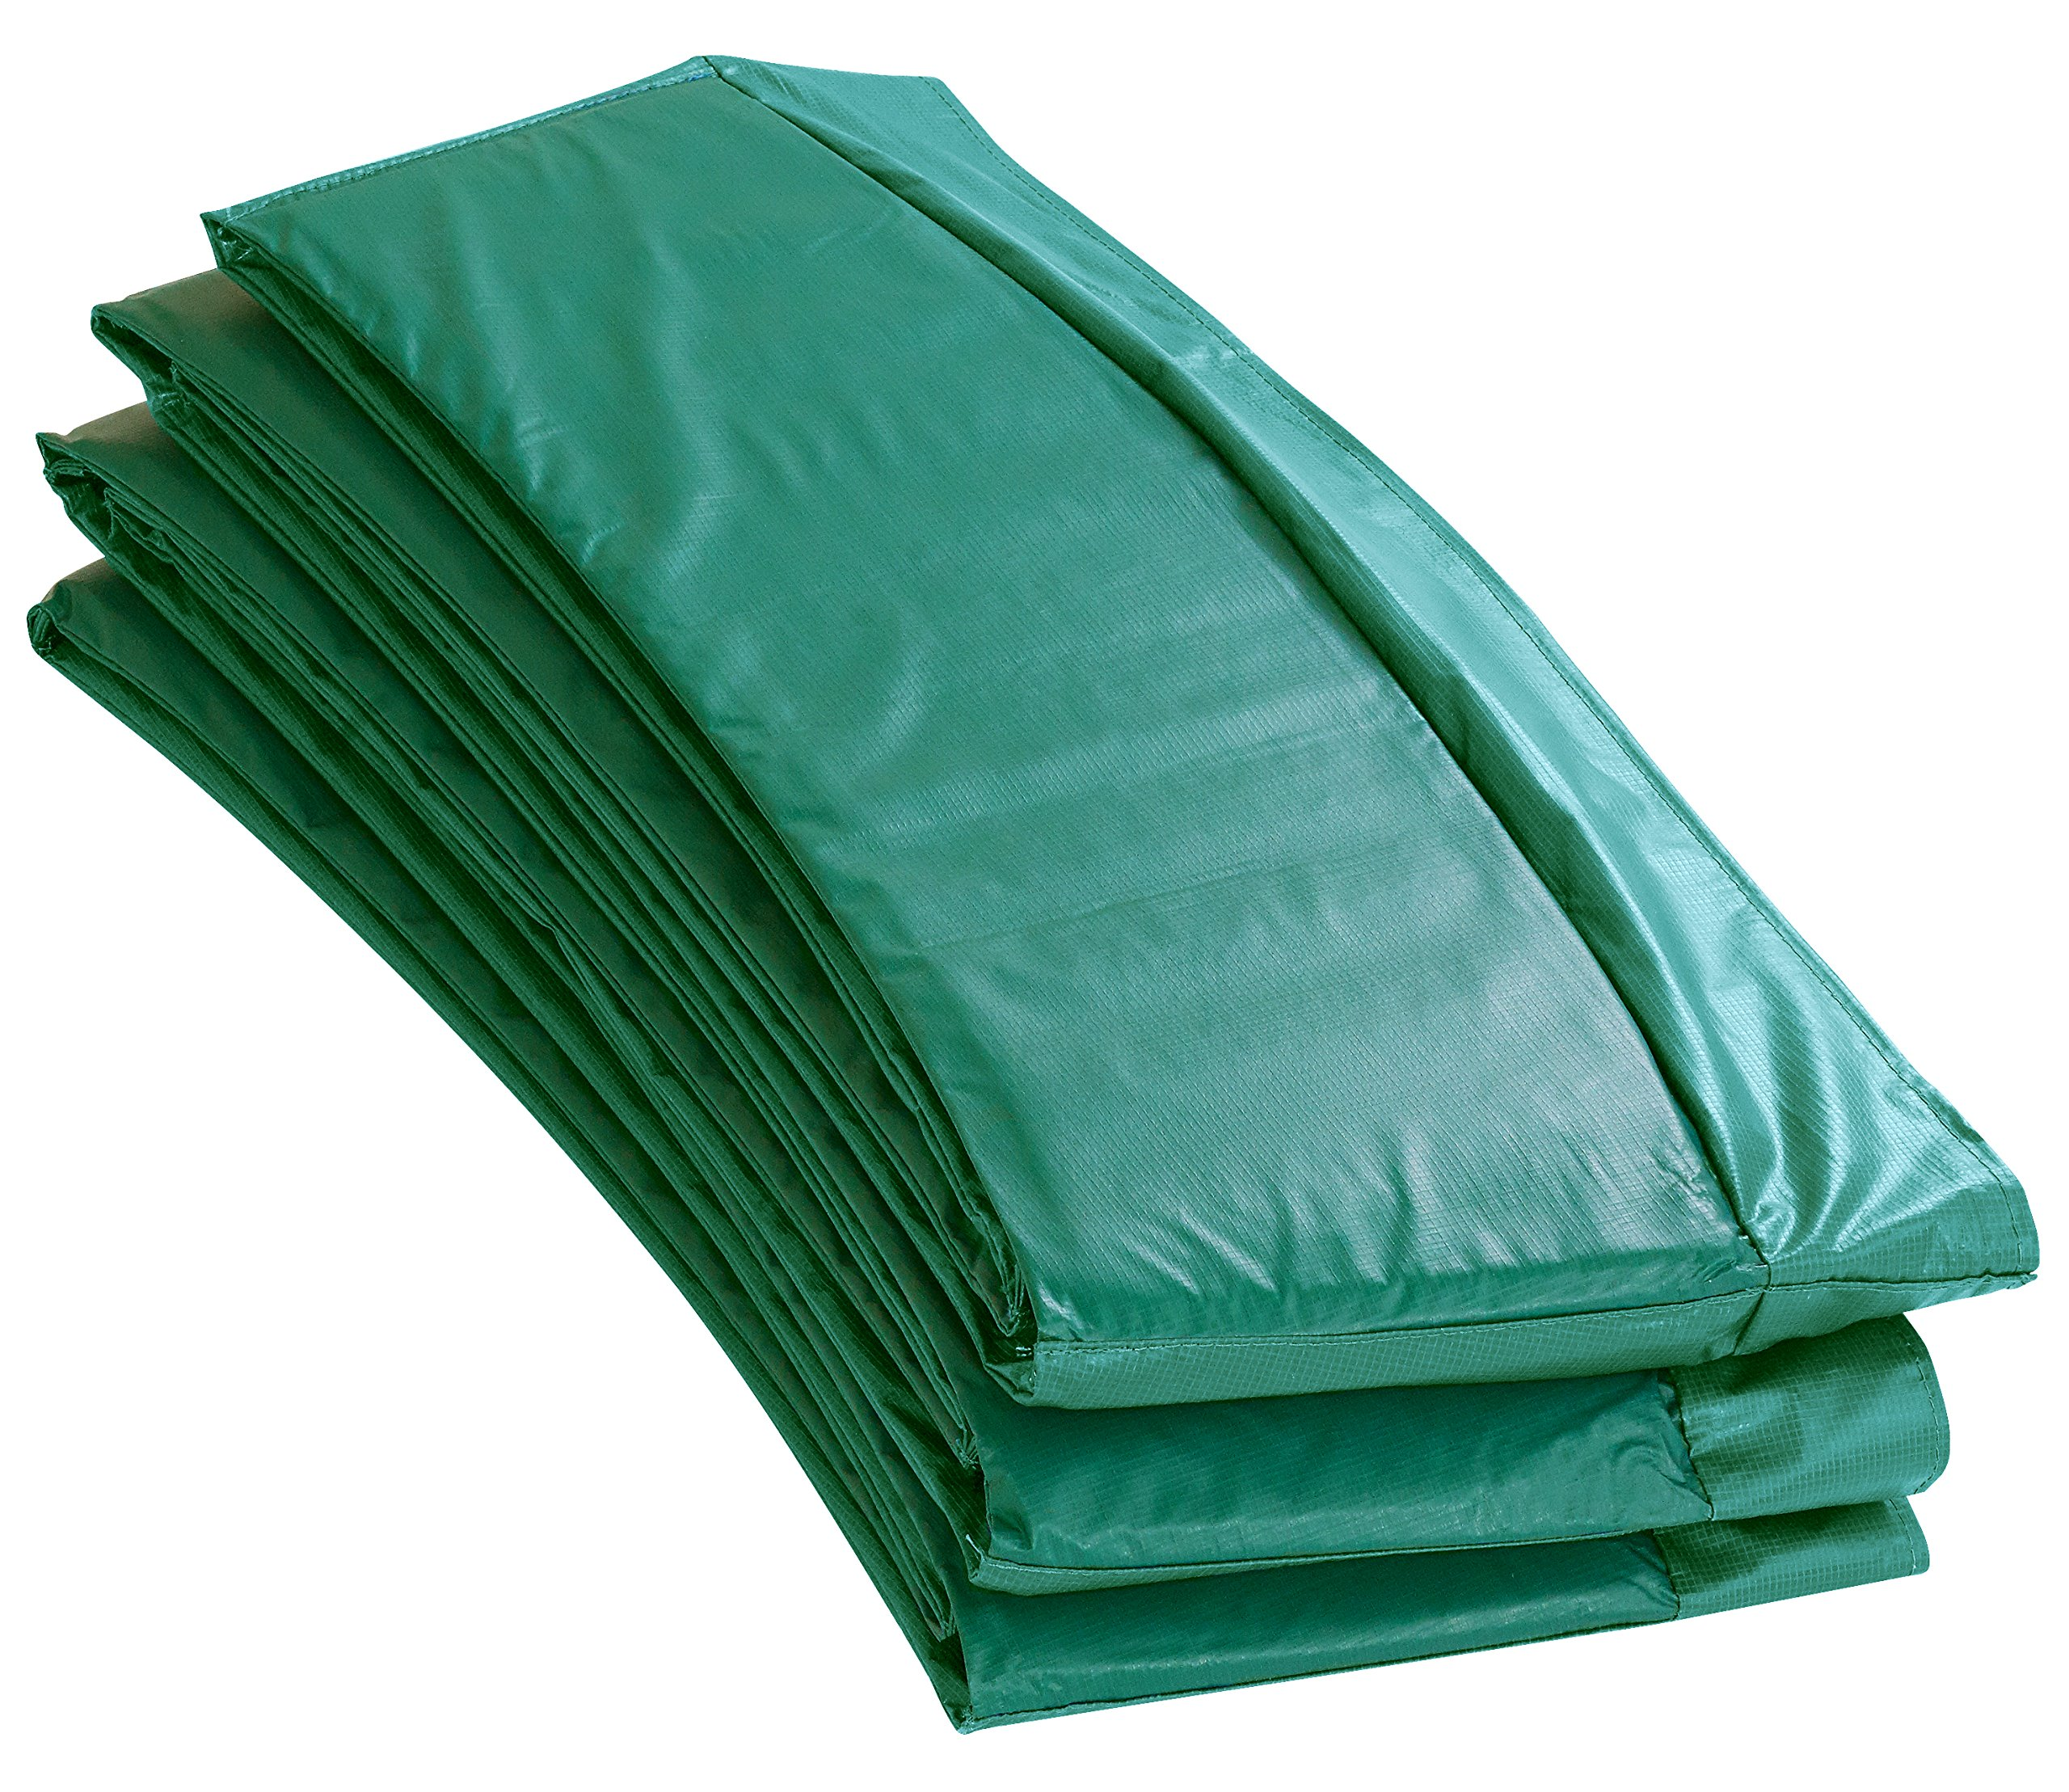 Upper Bounce 12' Super Trampoline Replacement Safety Pad With Spring Cover Fits 12 FT Round Trampoline Frames With 10 wide In Green Color